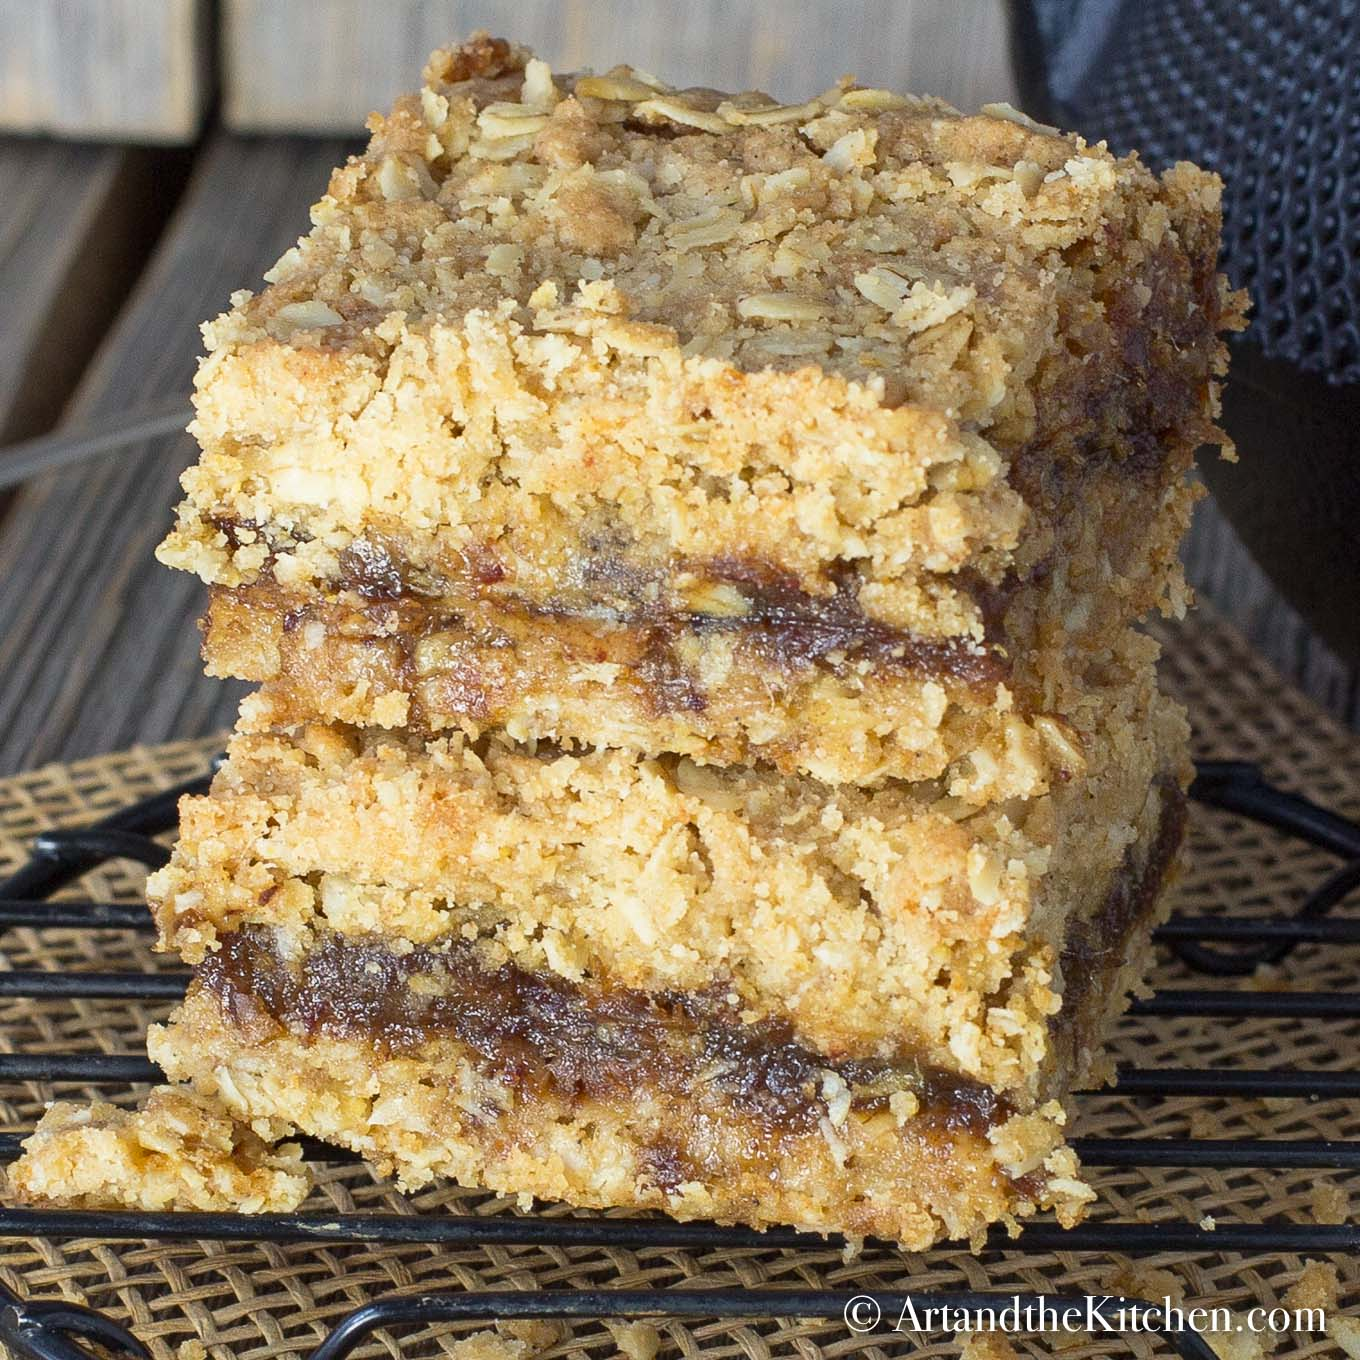 A stack of two date squares on black cooling rack.